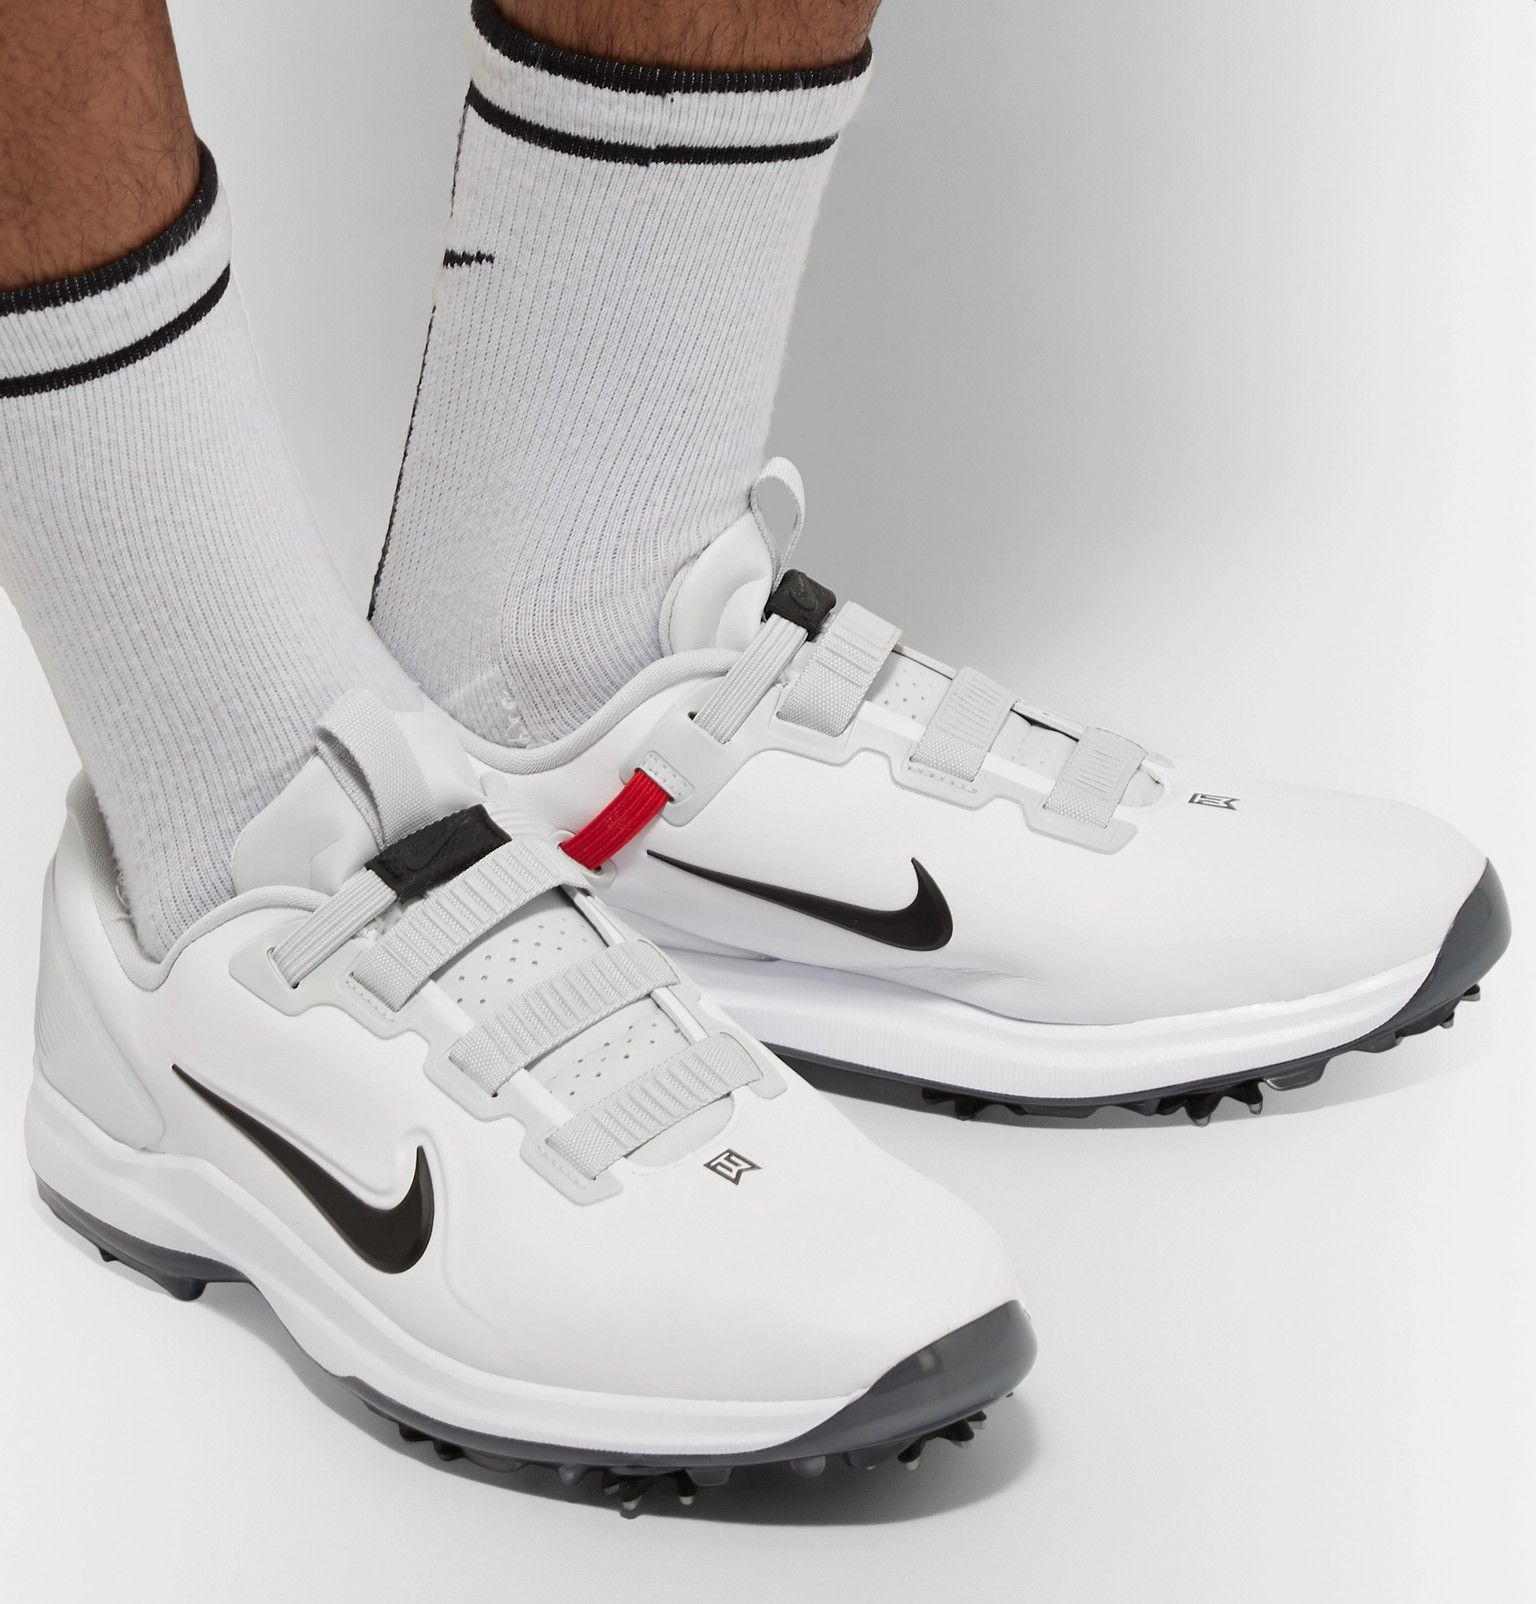 nike tiger golf shoes